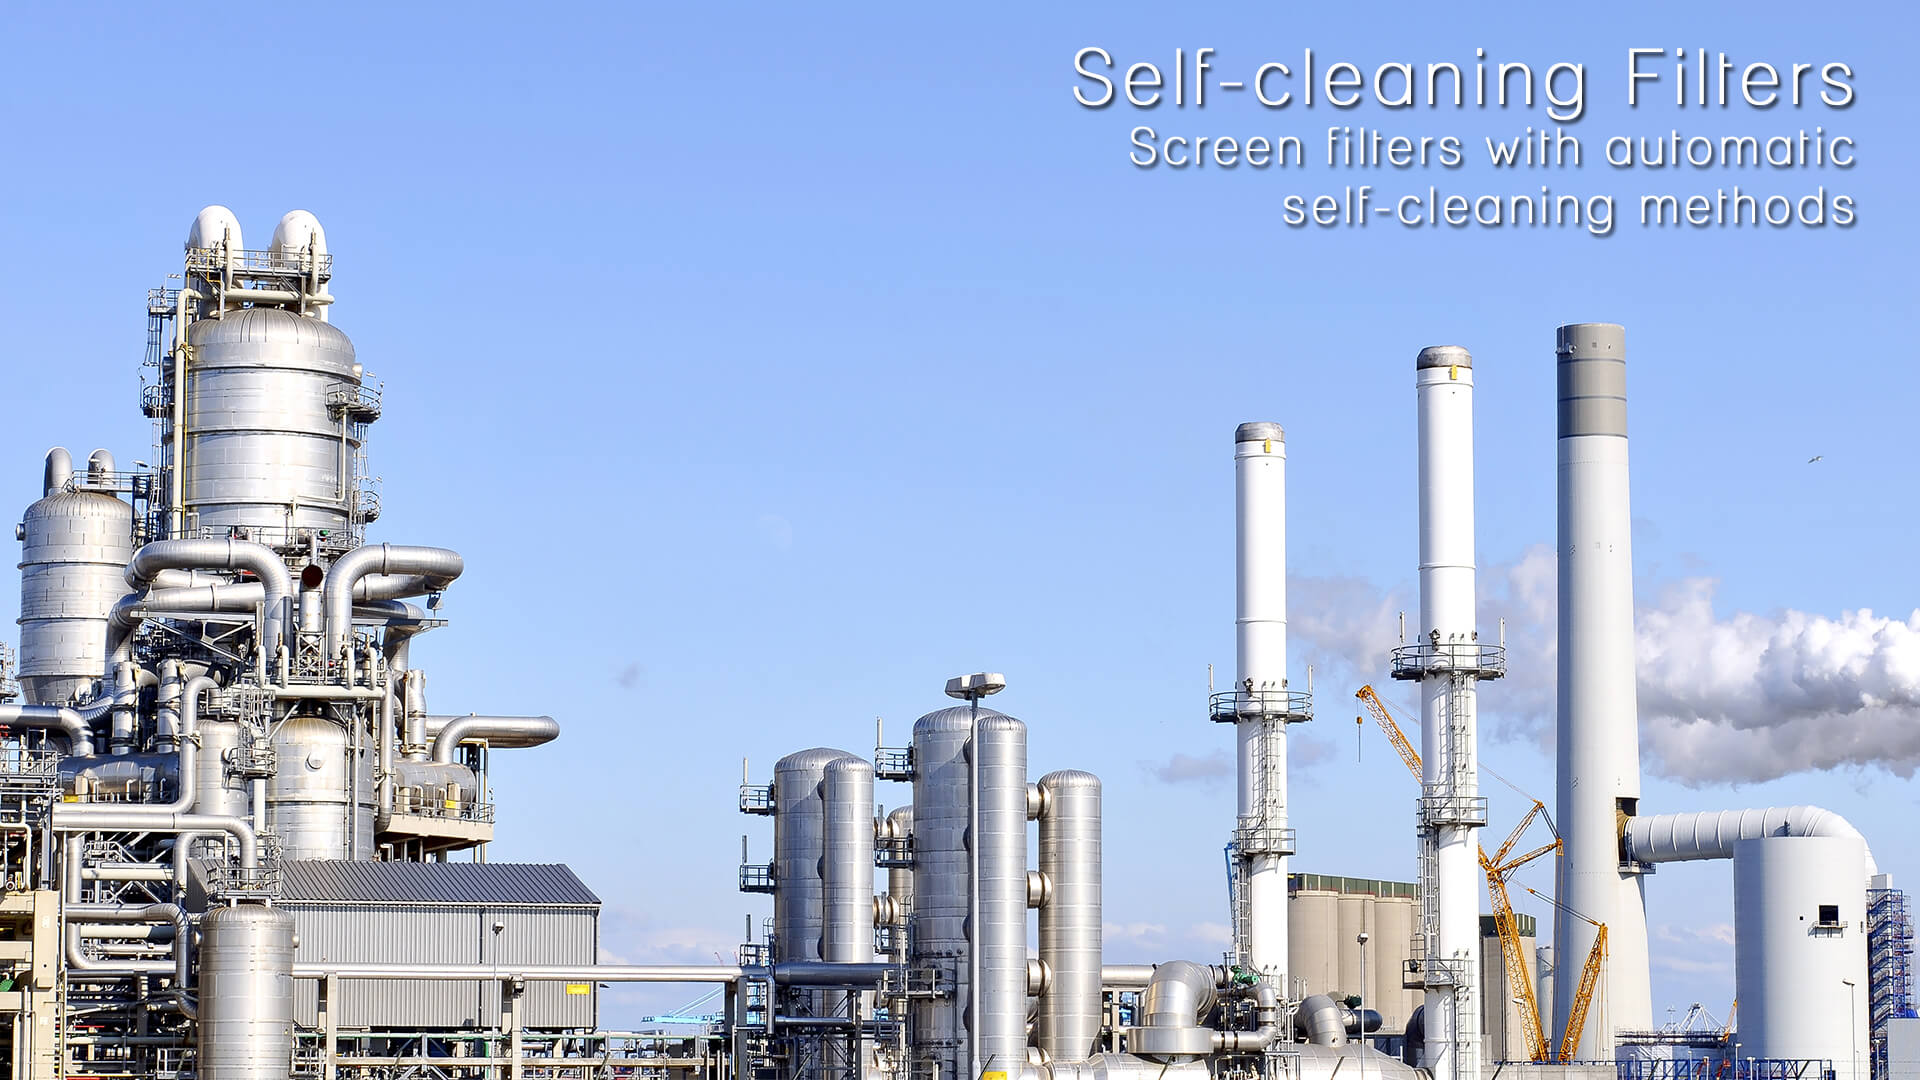 Self-cleaning Filters - Screen filters with automatic self-cleaning methods